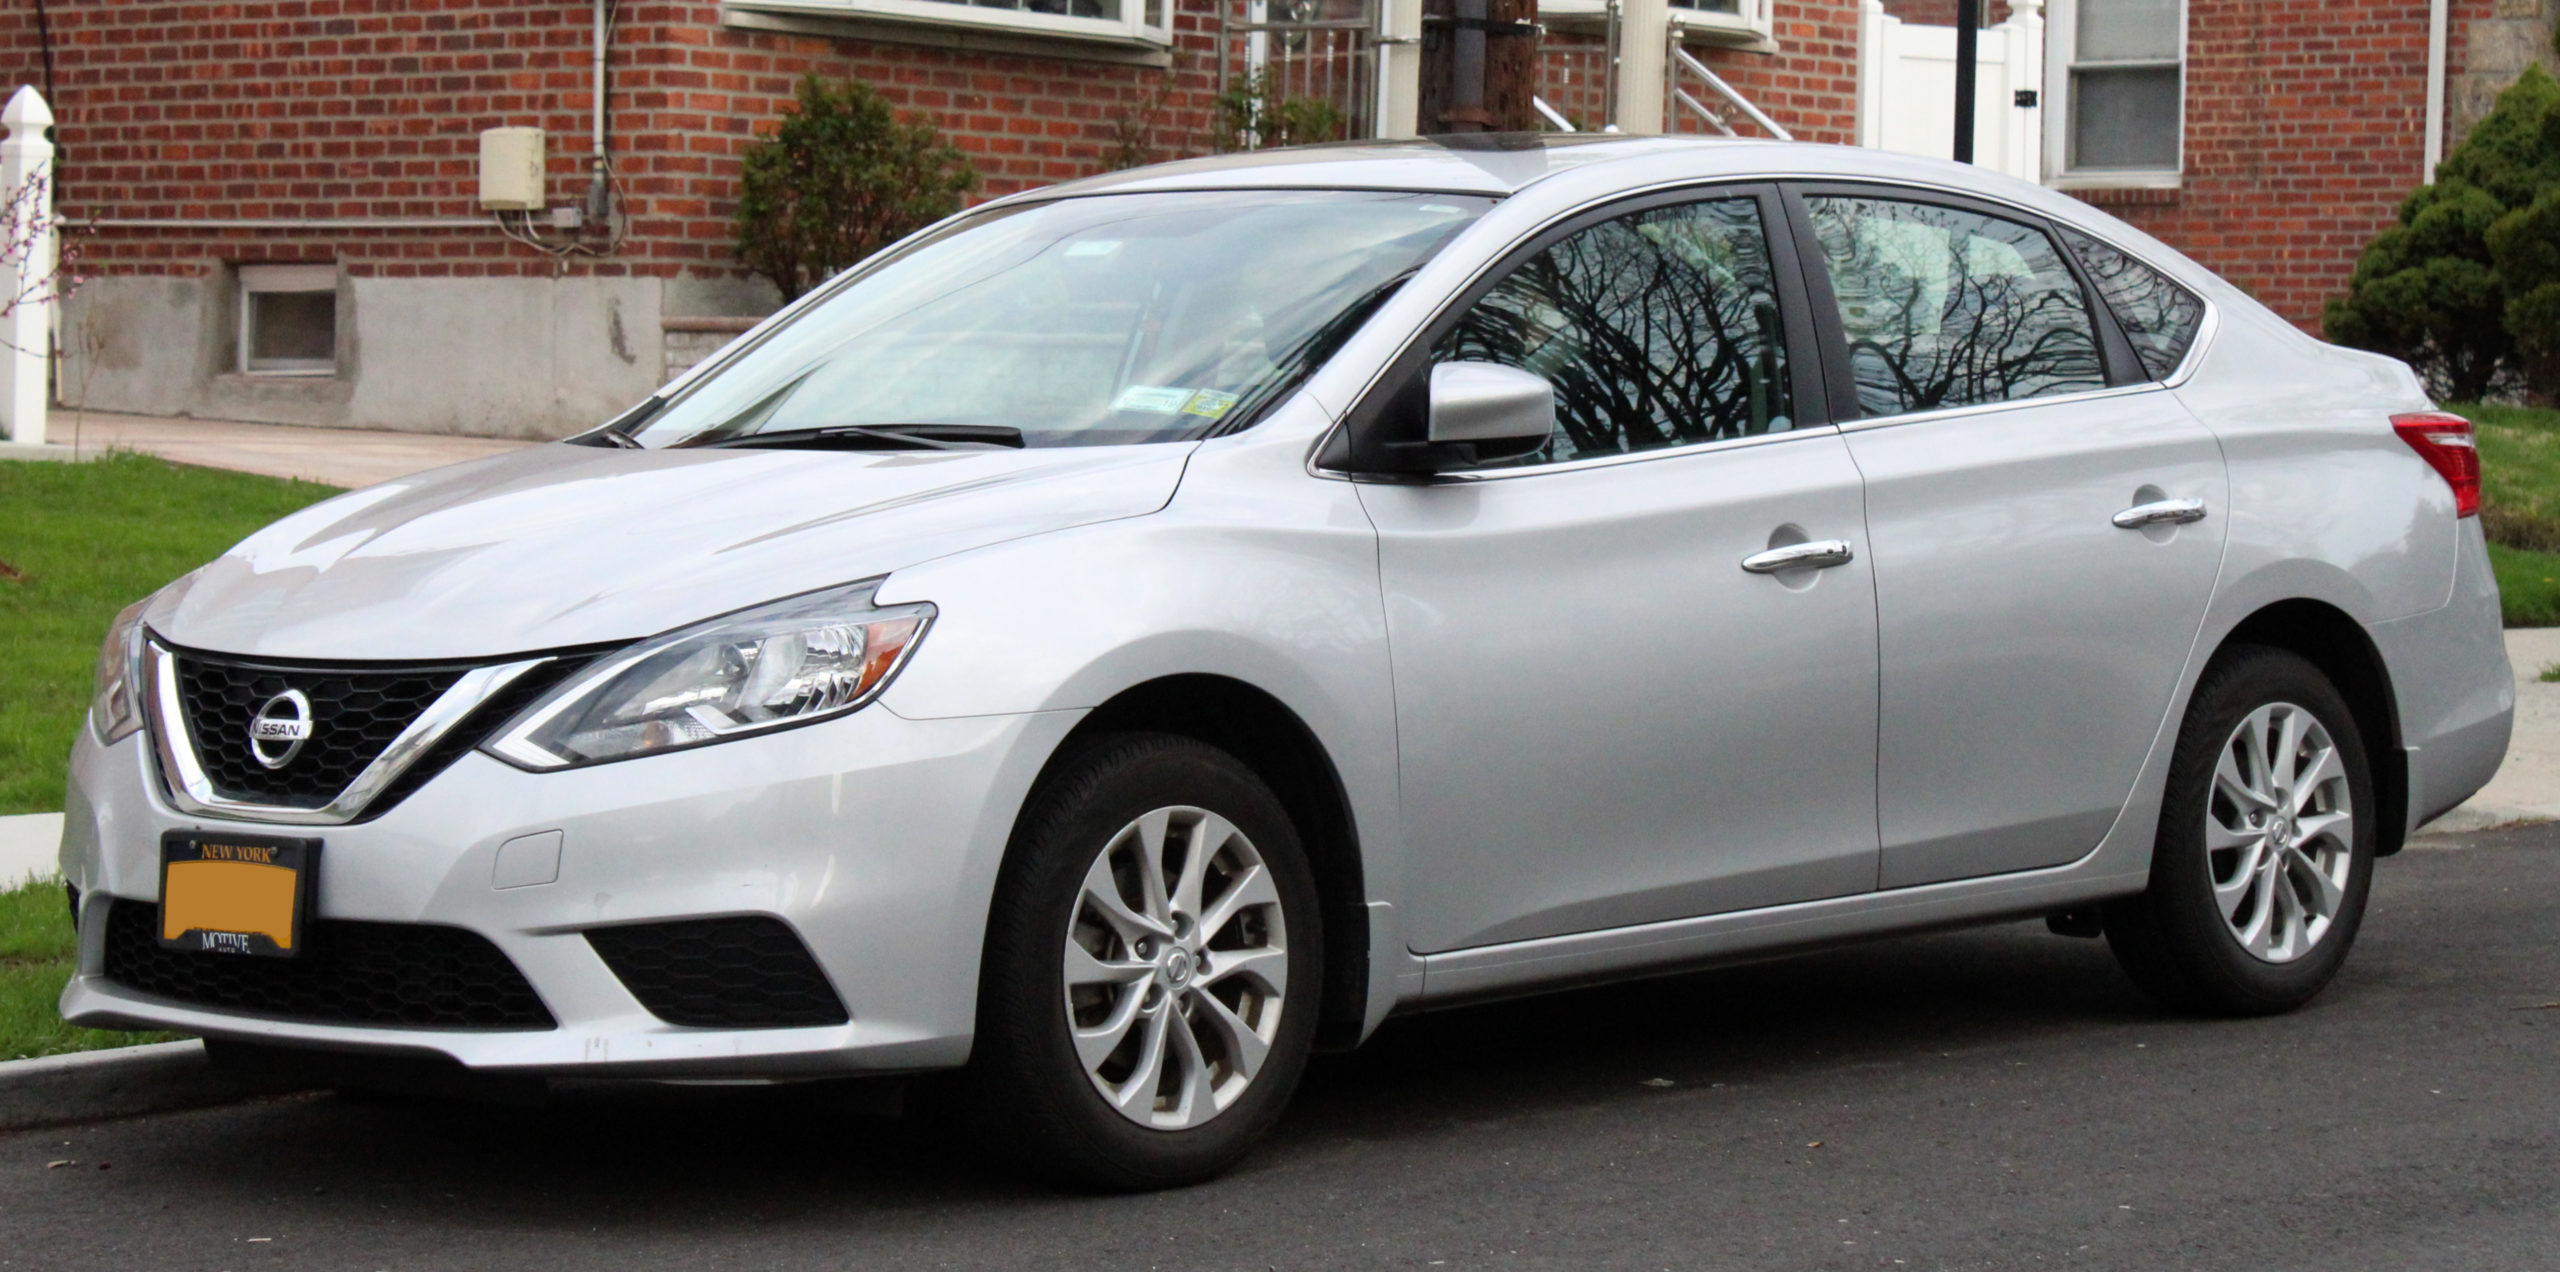 2021 nissan sentra 2.0 oil capacity release date, battery